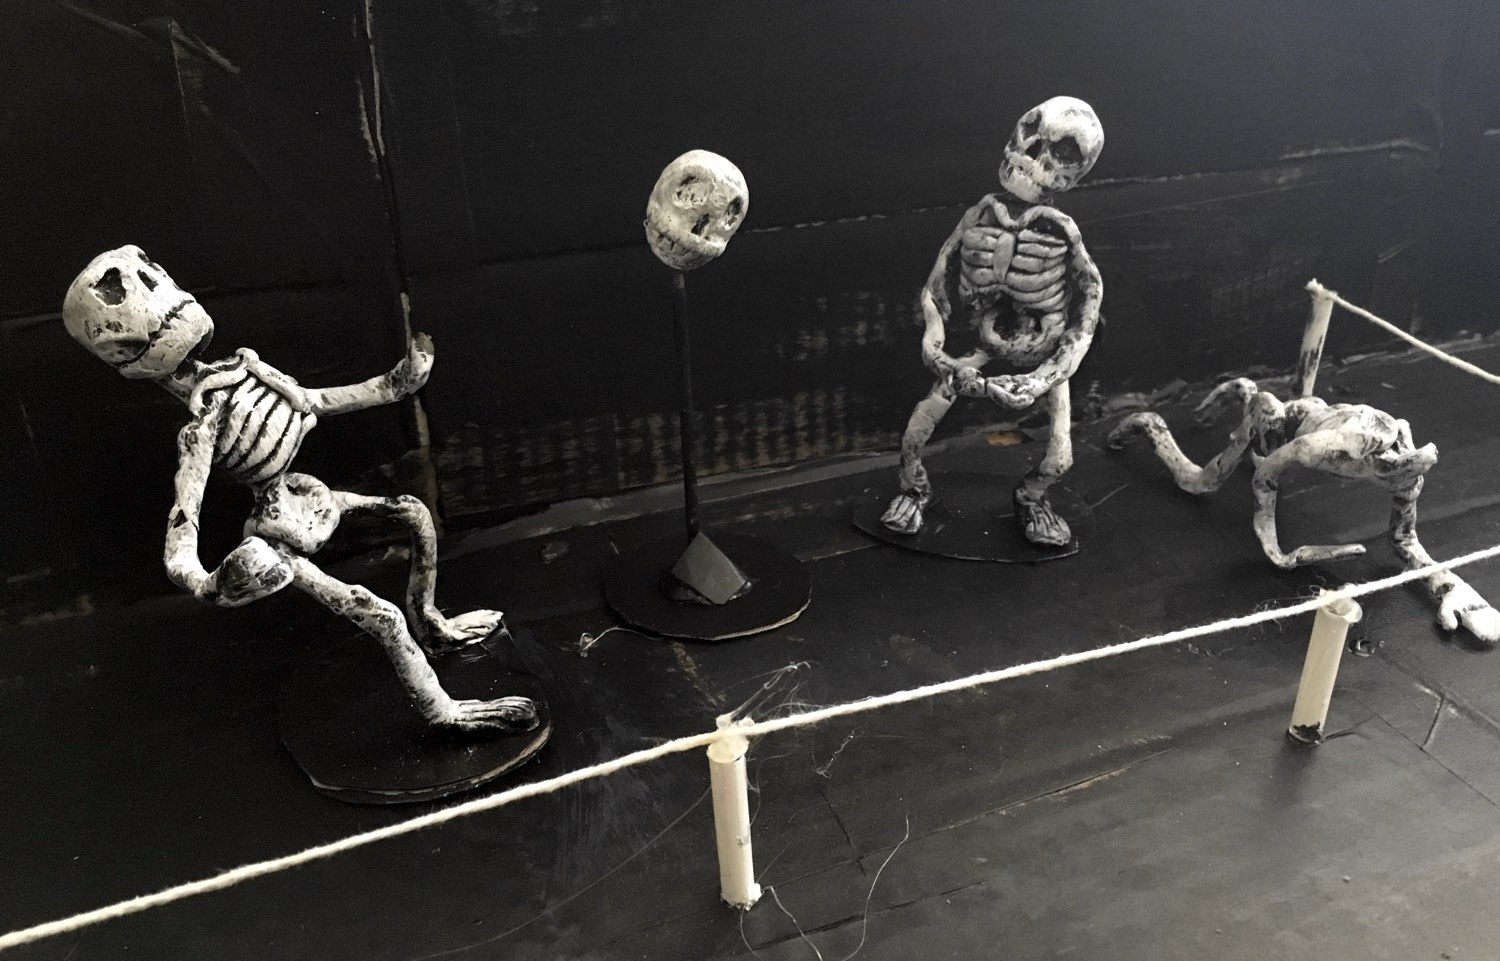 Three skeletons, sculpted out of clay and placed in our scale model